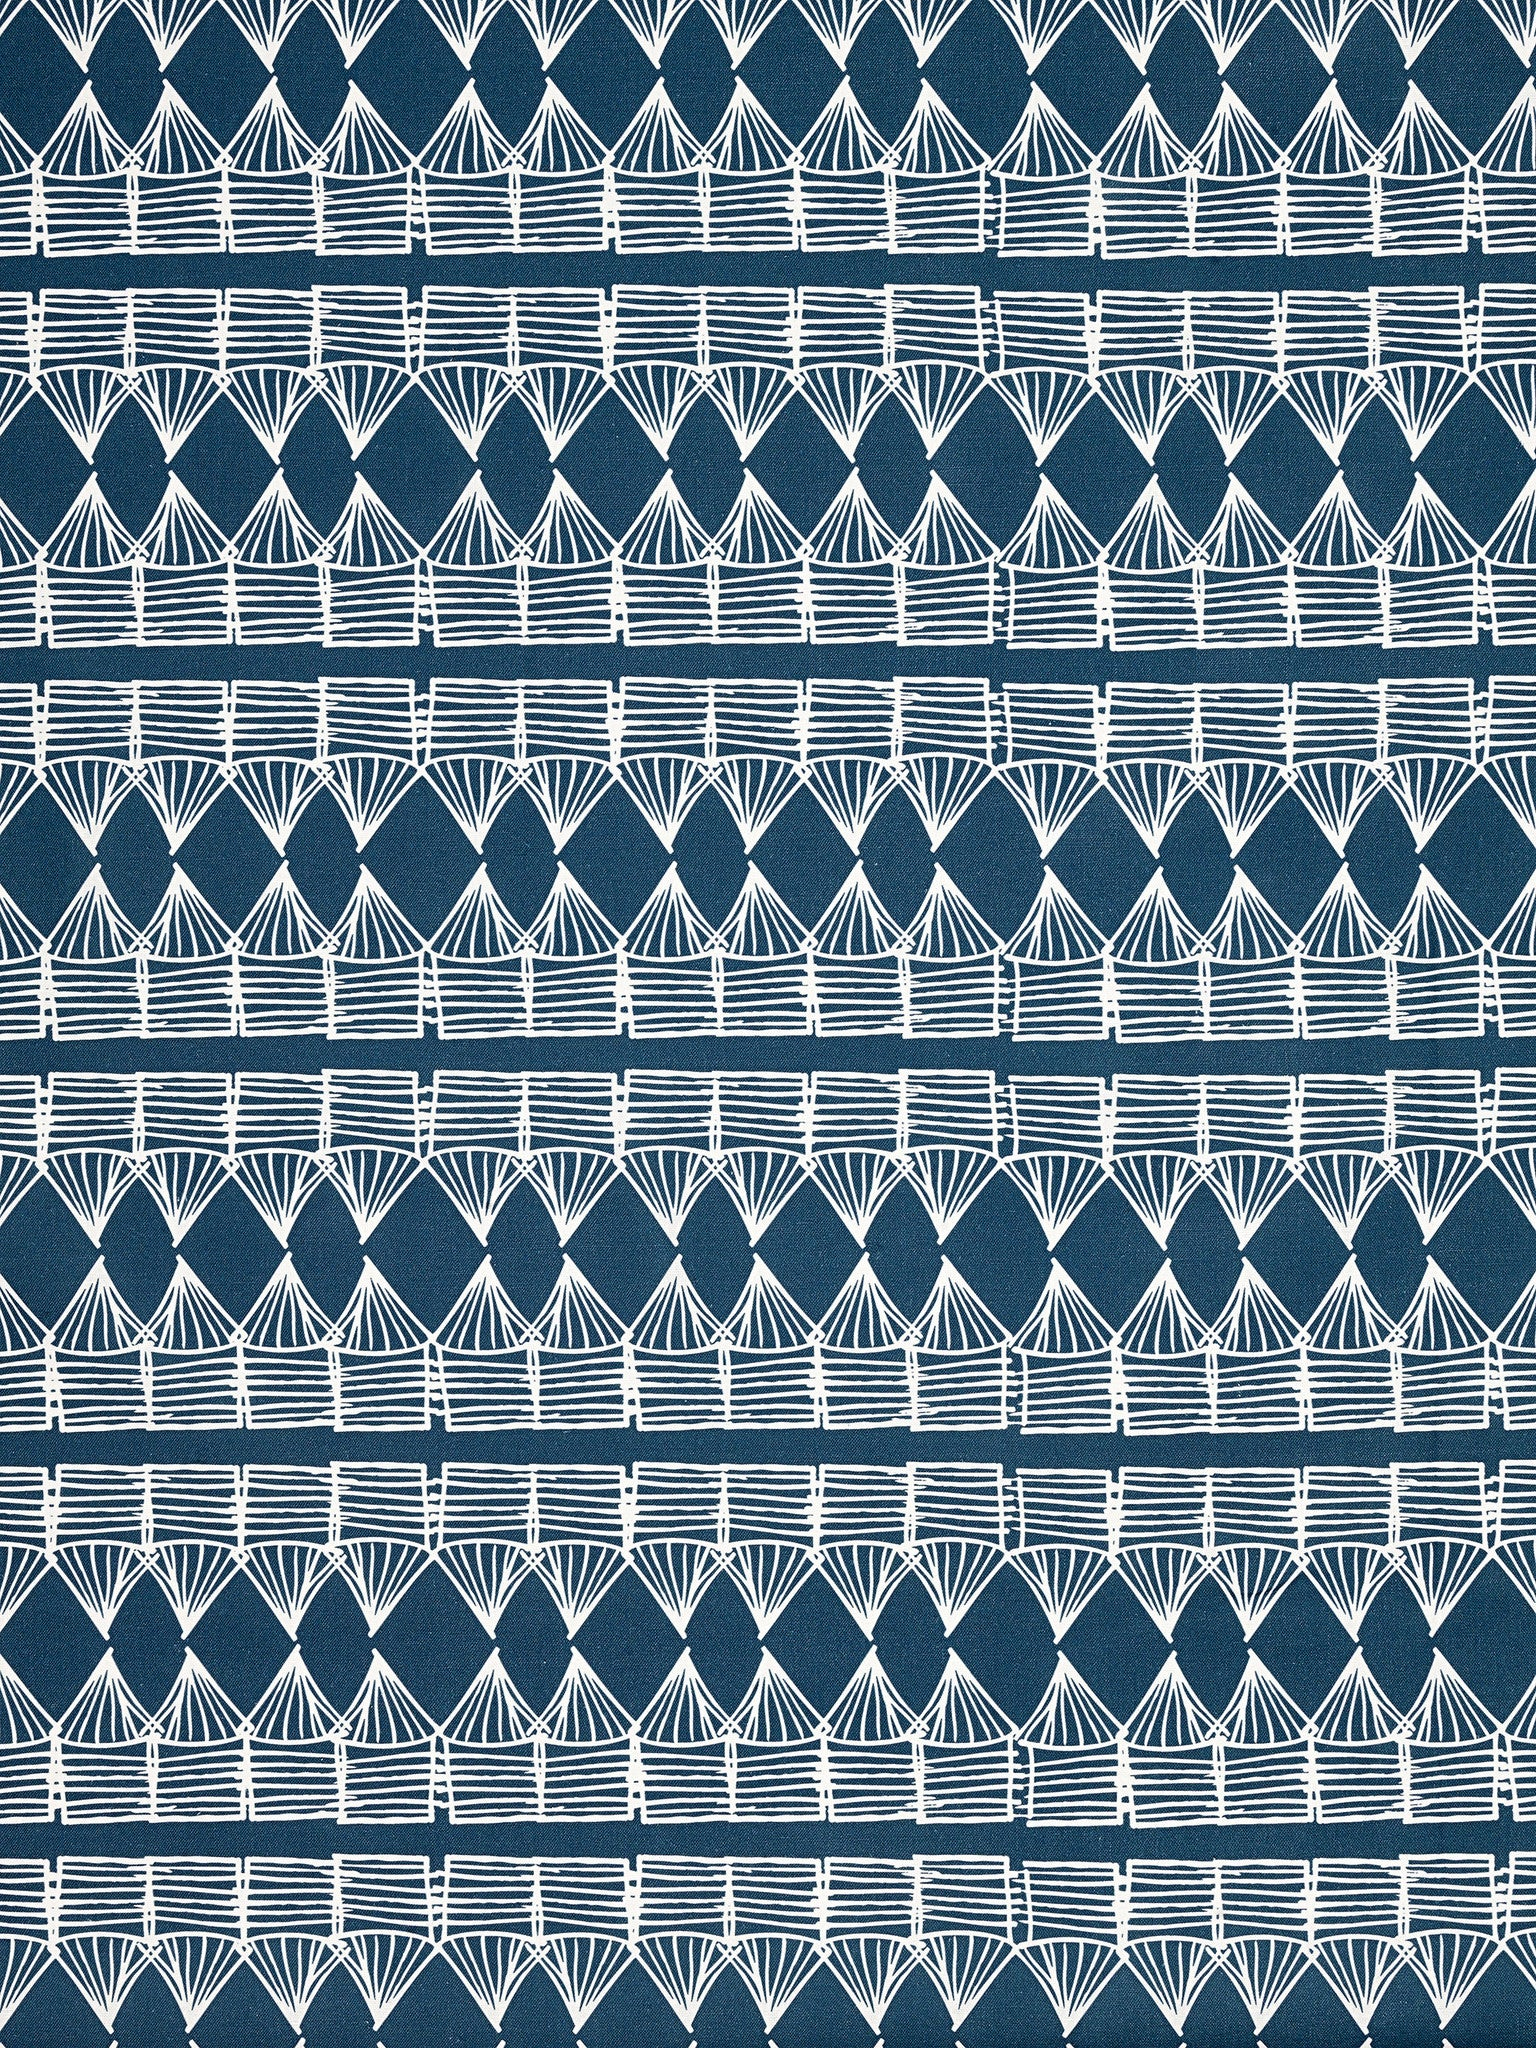 Tiki Huts Pattern Cotton Linen Designer Home Decor Fabric by the meter or by the yard in Dark Petrol Blue (Navy) for curtains, blinds, upholstery ships from Canada worldwide including USA